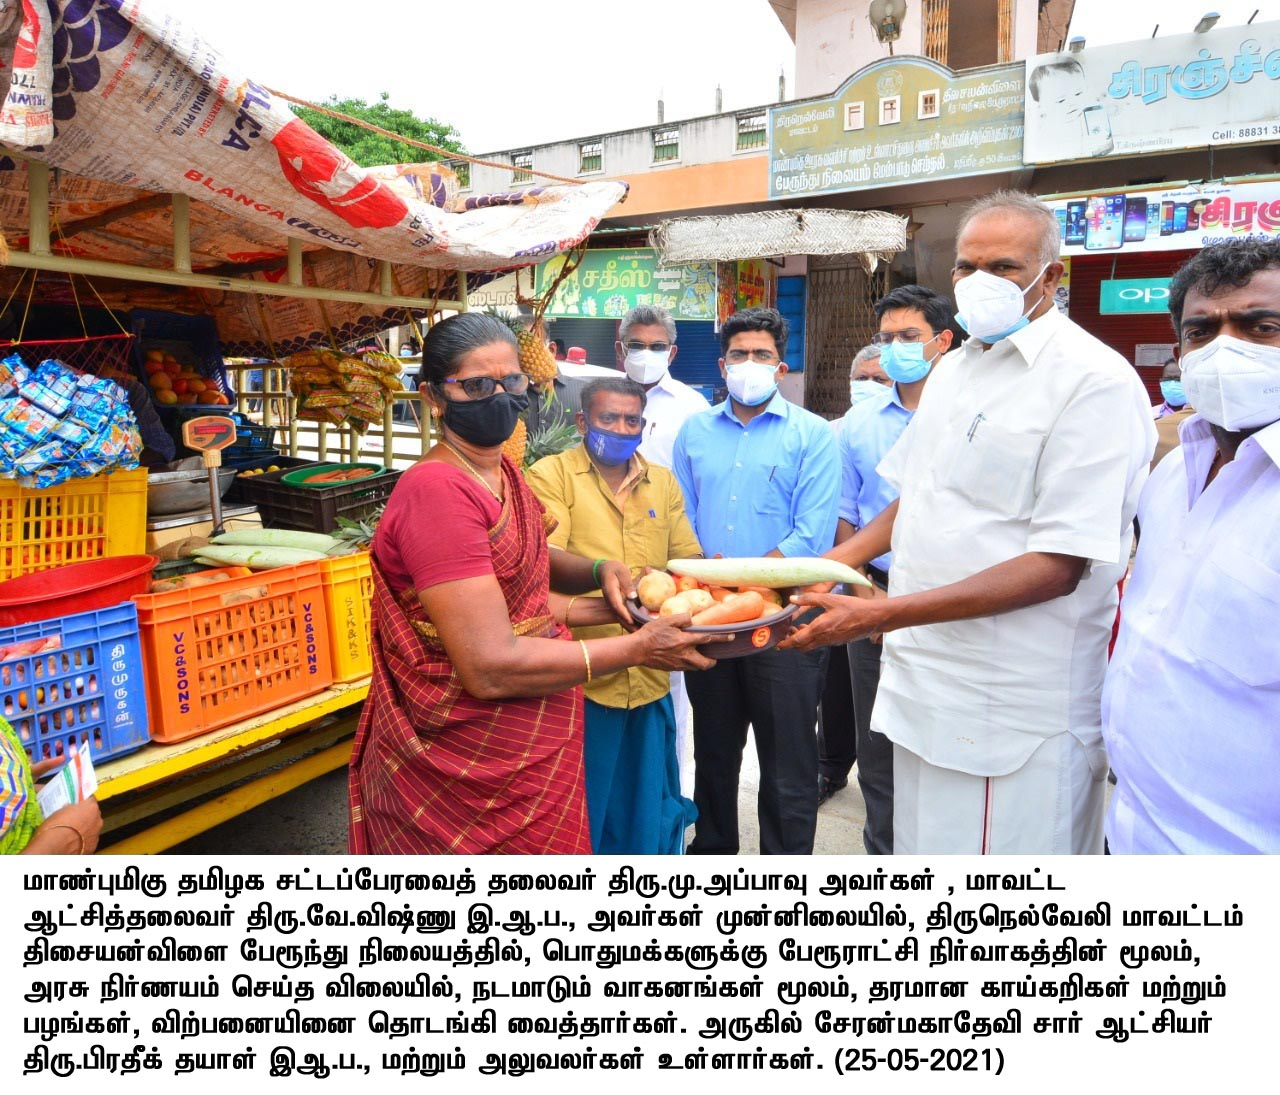 Hon'ble Speaker initiated the Corona Vaccination campaign for 18 to 44 age people 1